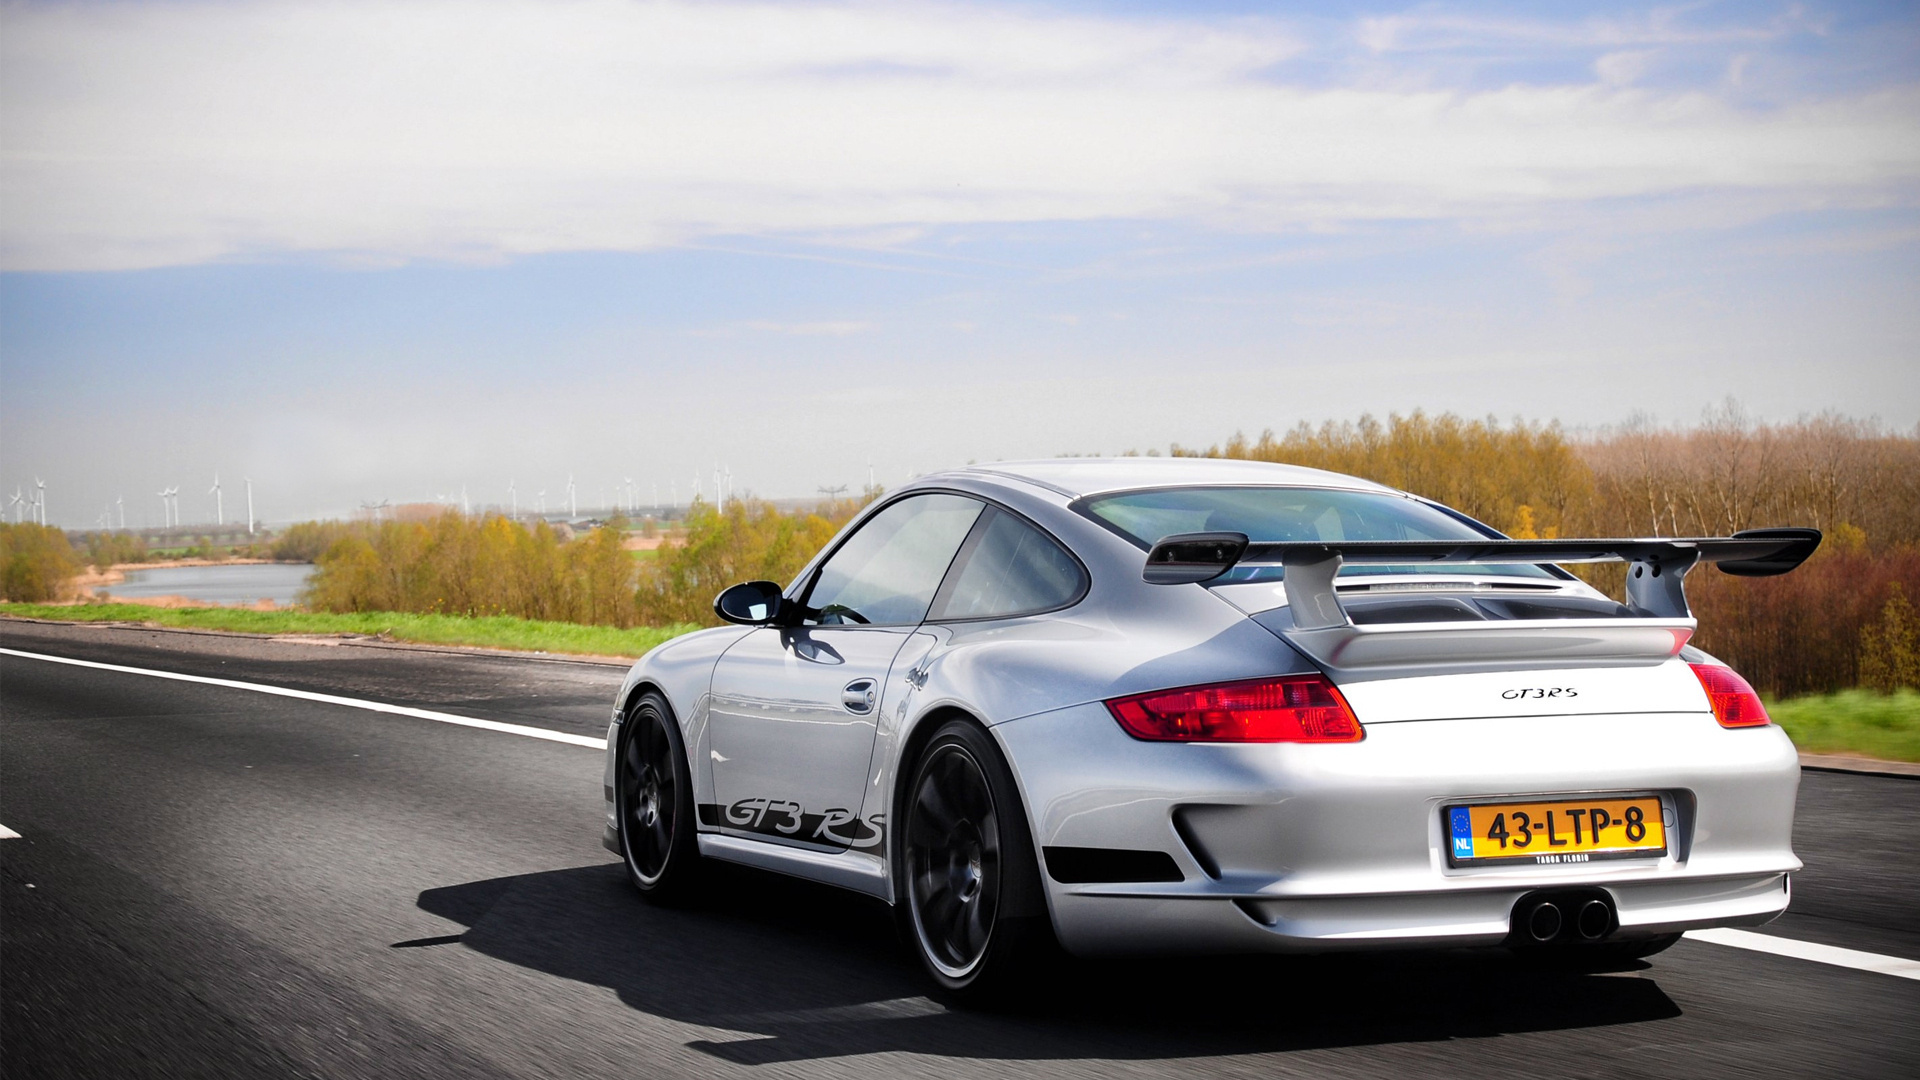 Porsche Supercar Wallpaper - HD Wallpapers Backgrounds of ...